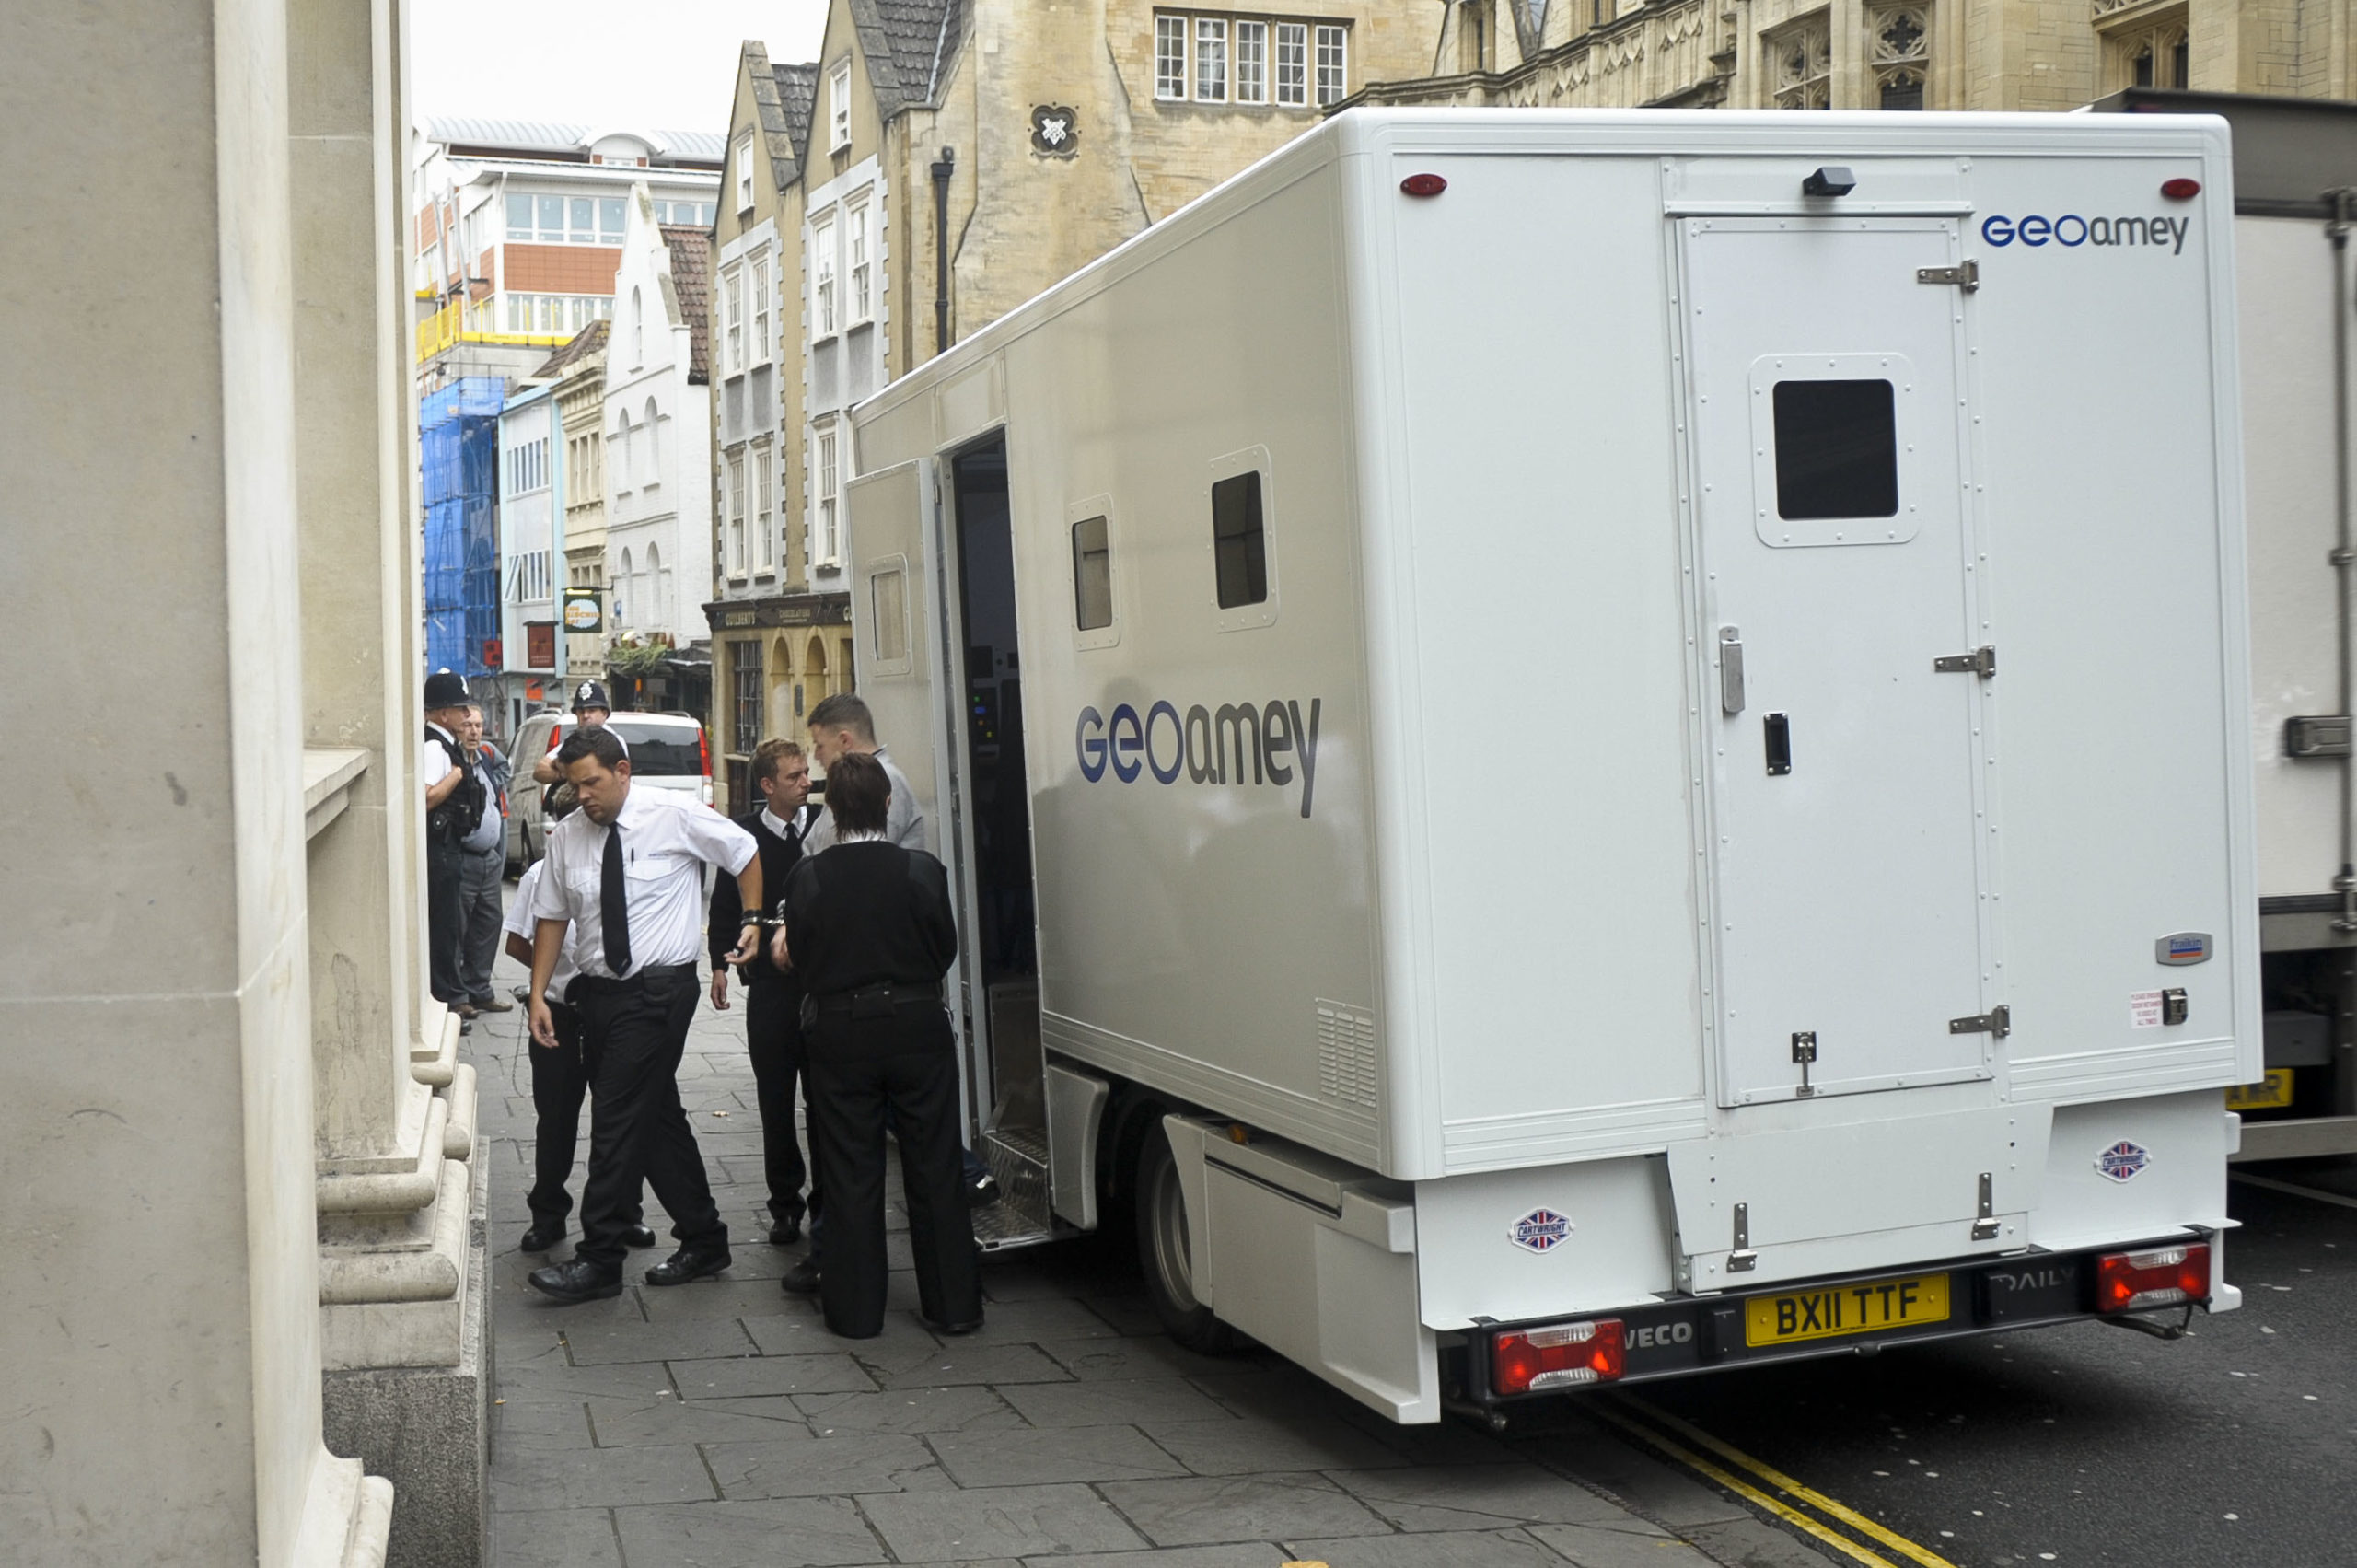 GeoAmey provides prison transport services to Scotland's courts.